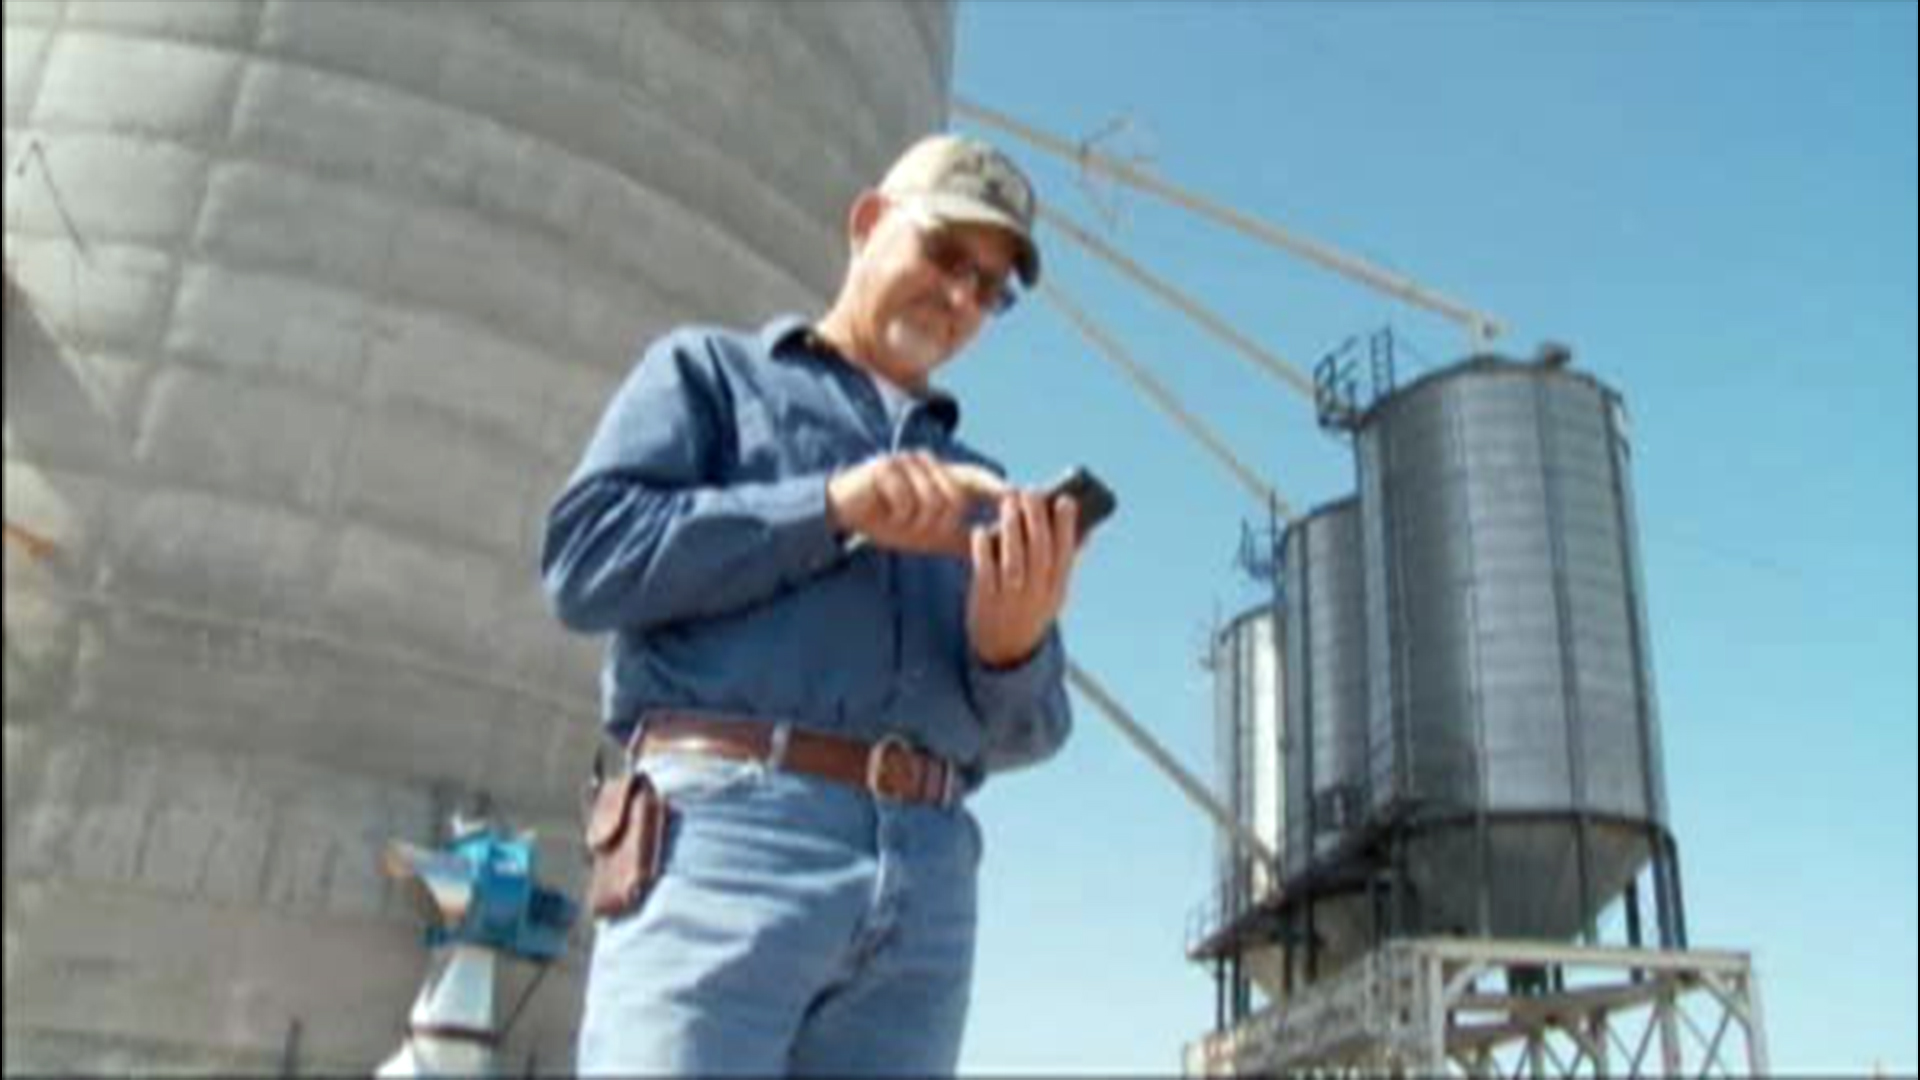 iPhone Lost in Oklahoma Grain Elevator Turns Up 8 Months Later in Japan